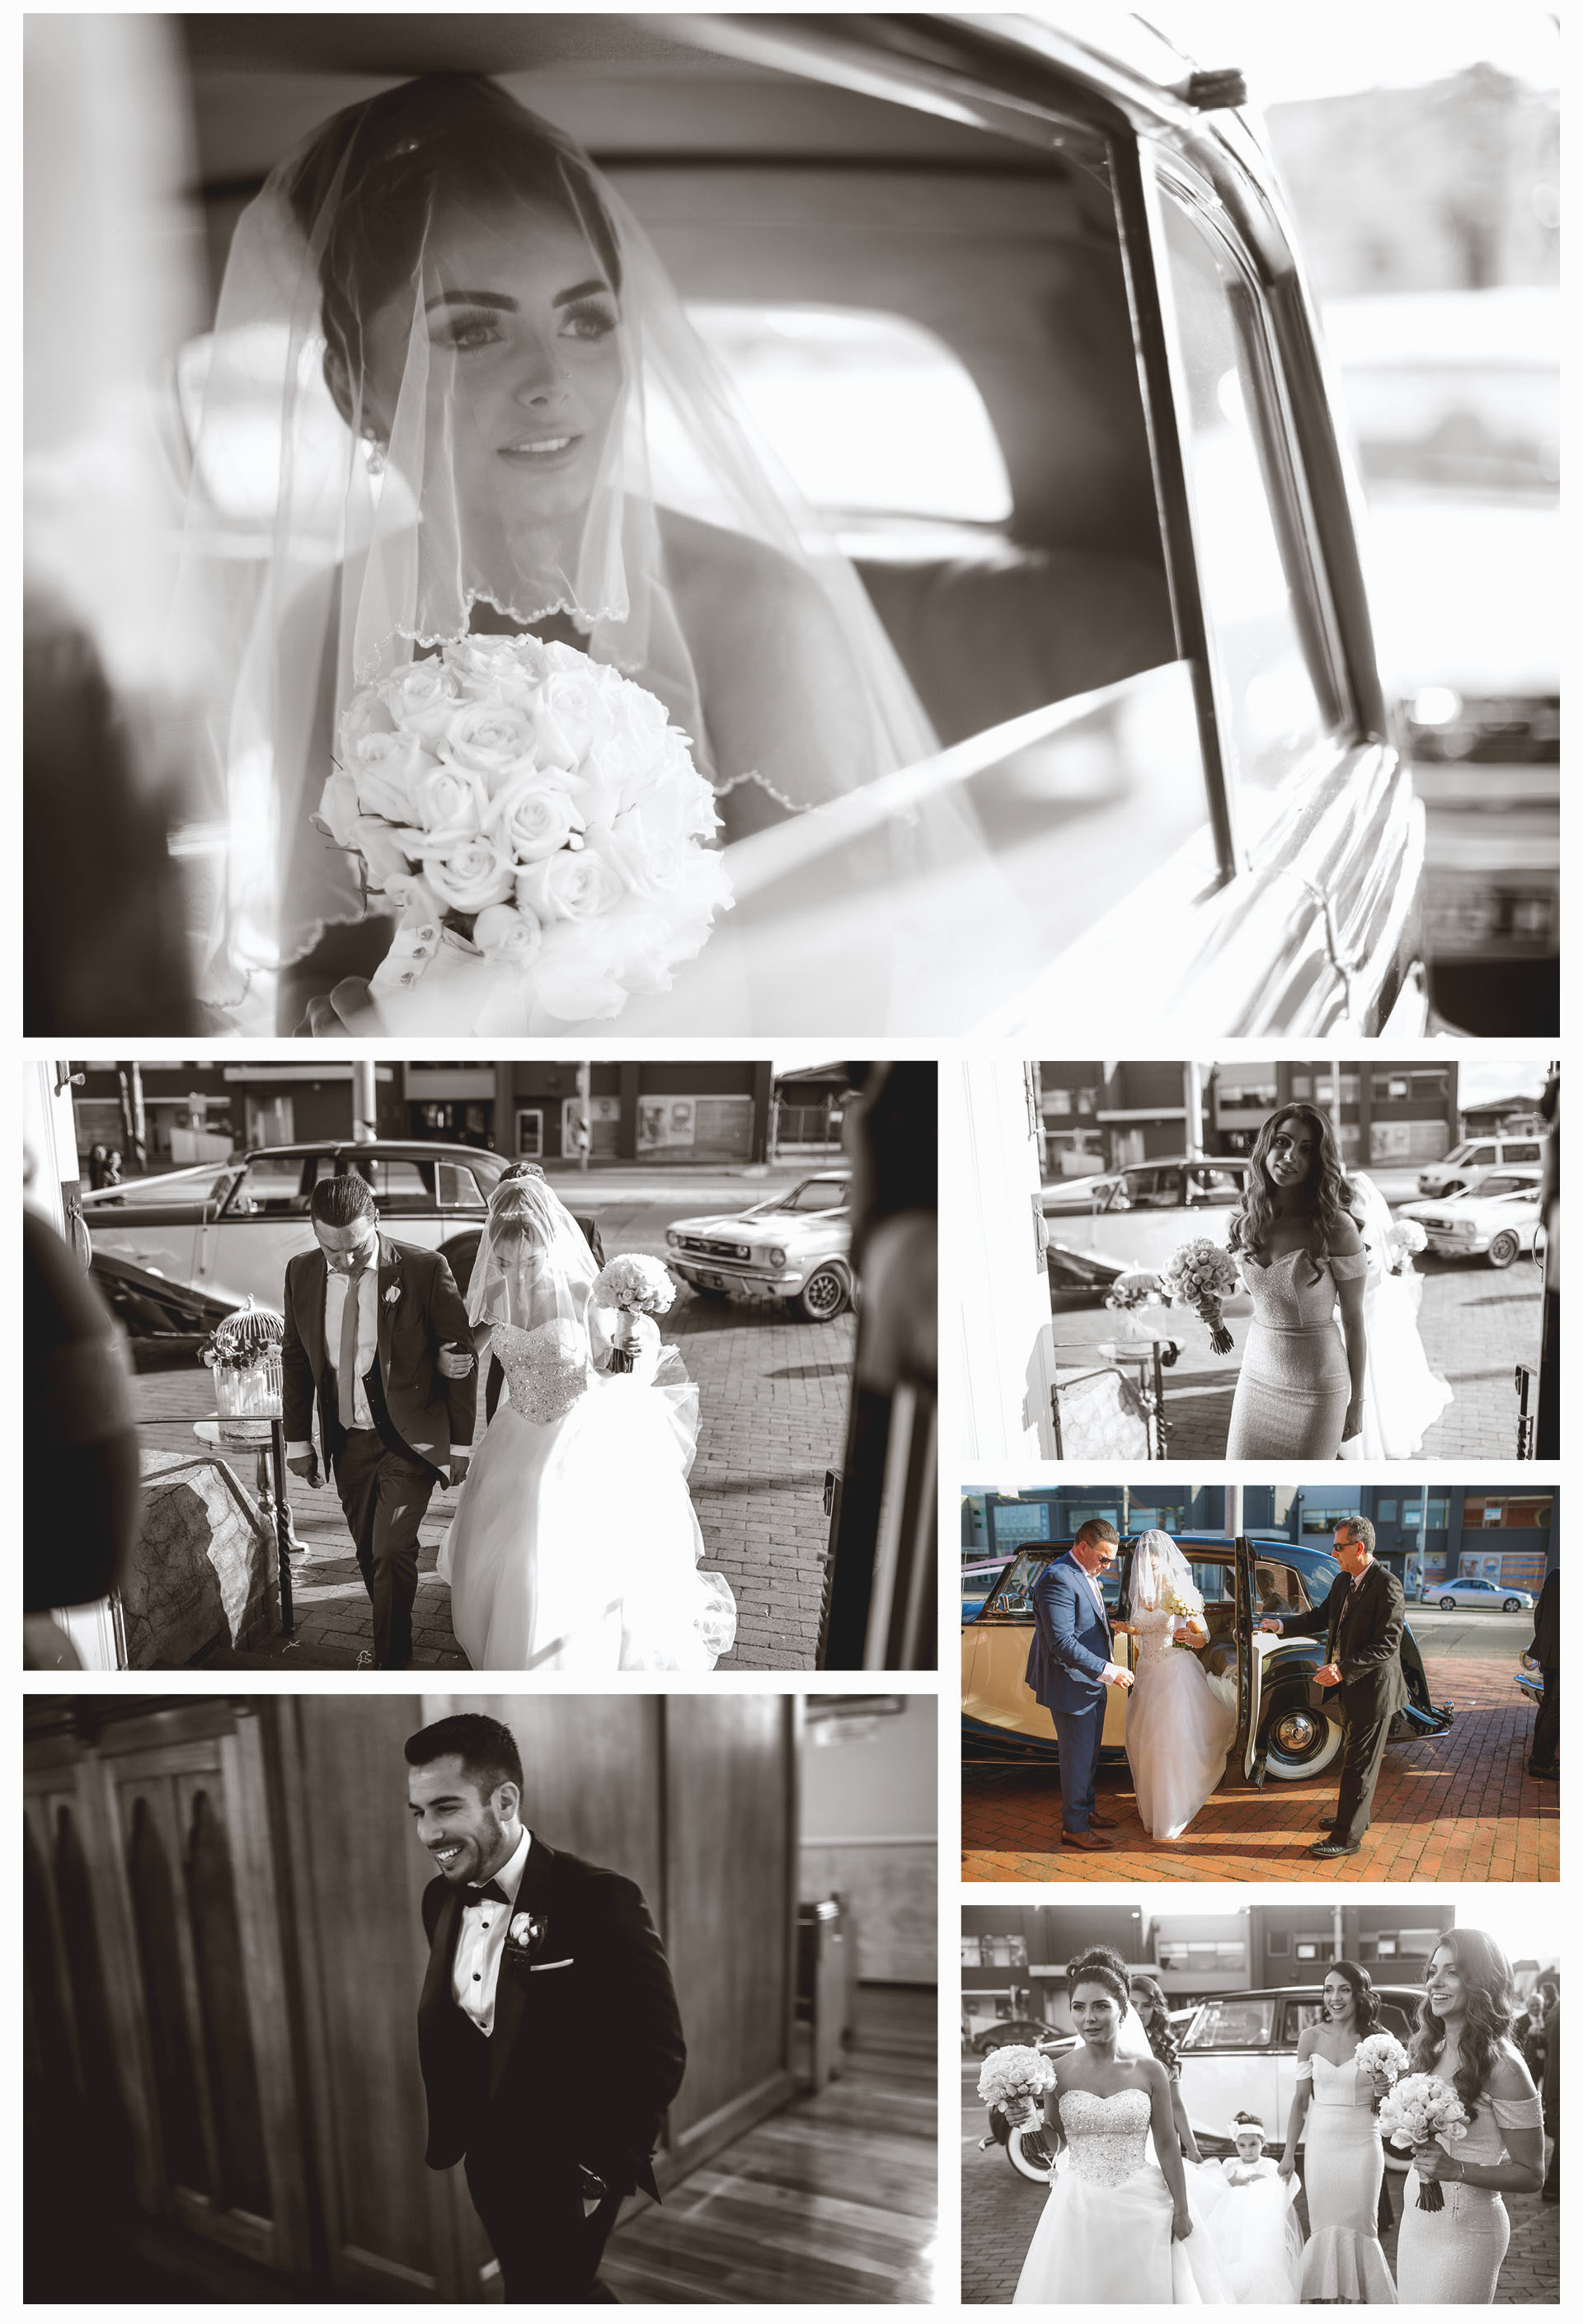 The bride goes to the wedding ceremony in a classic vintage car. Her father picks her up from the car